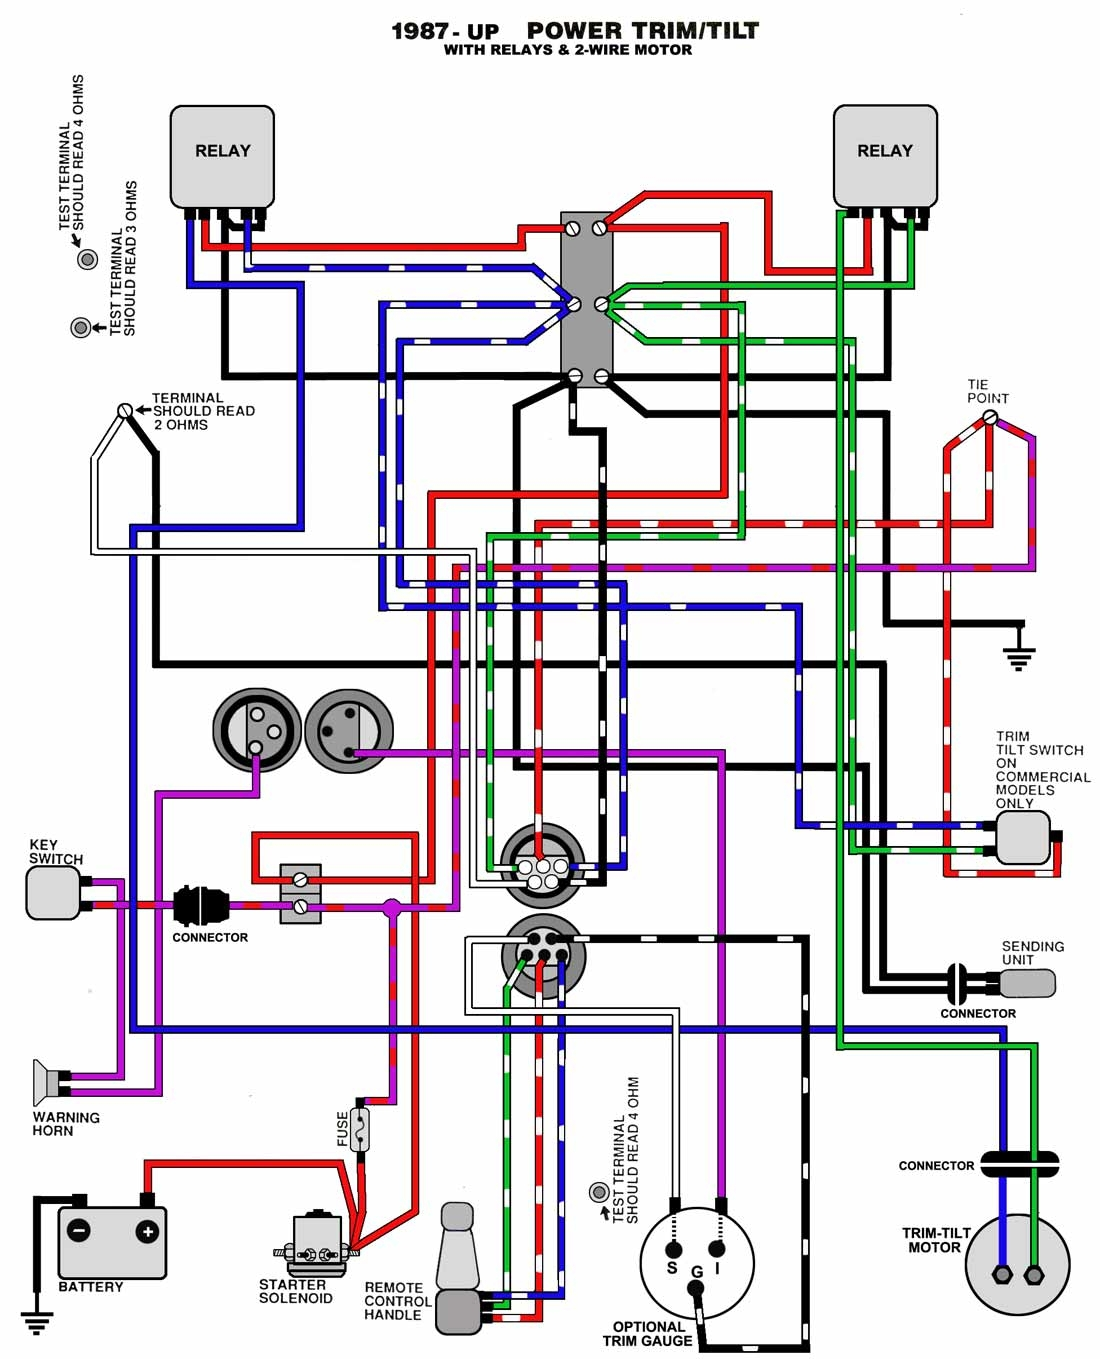 mercury outboard ignition switch wiring diagram | free ... ducati ignition switch wiring diagram 2004 mariner ignition switch wiring diagram